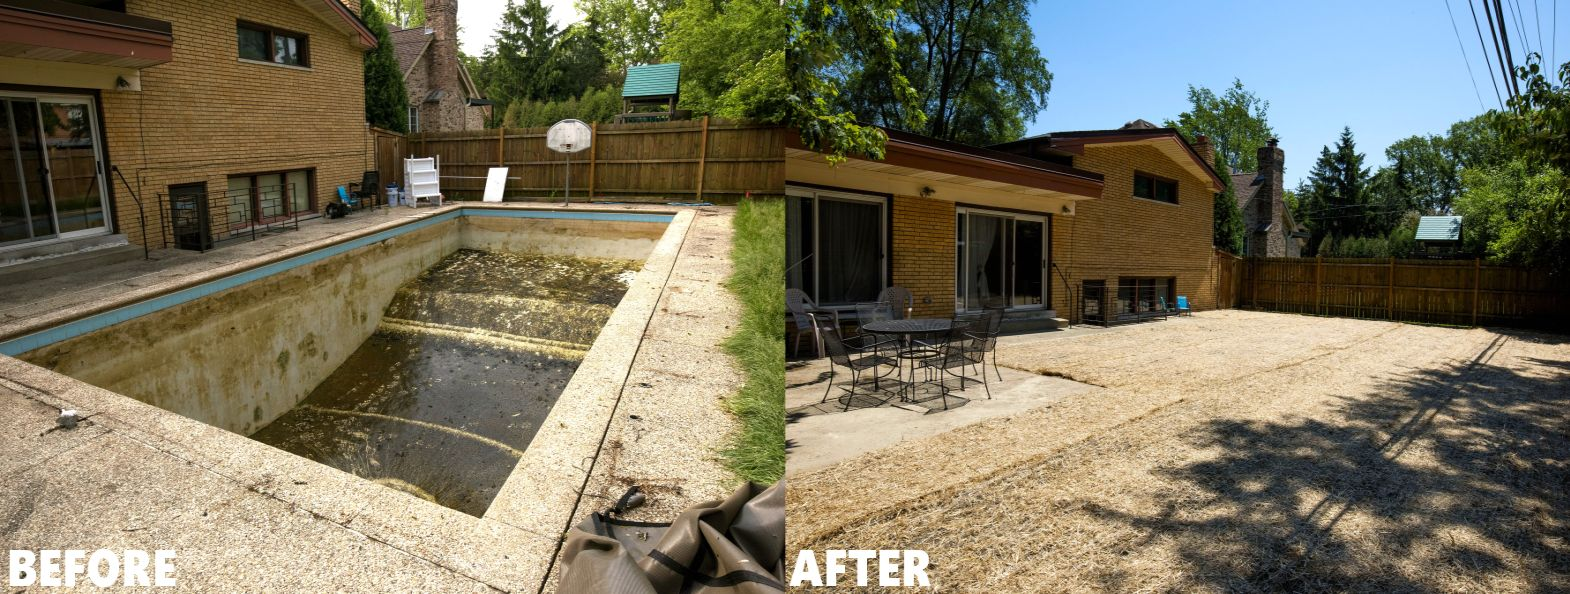 Mack Land LLC - Skokie, IL Pool Removal